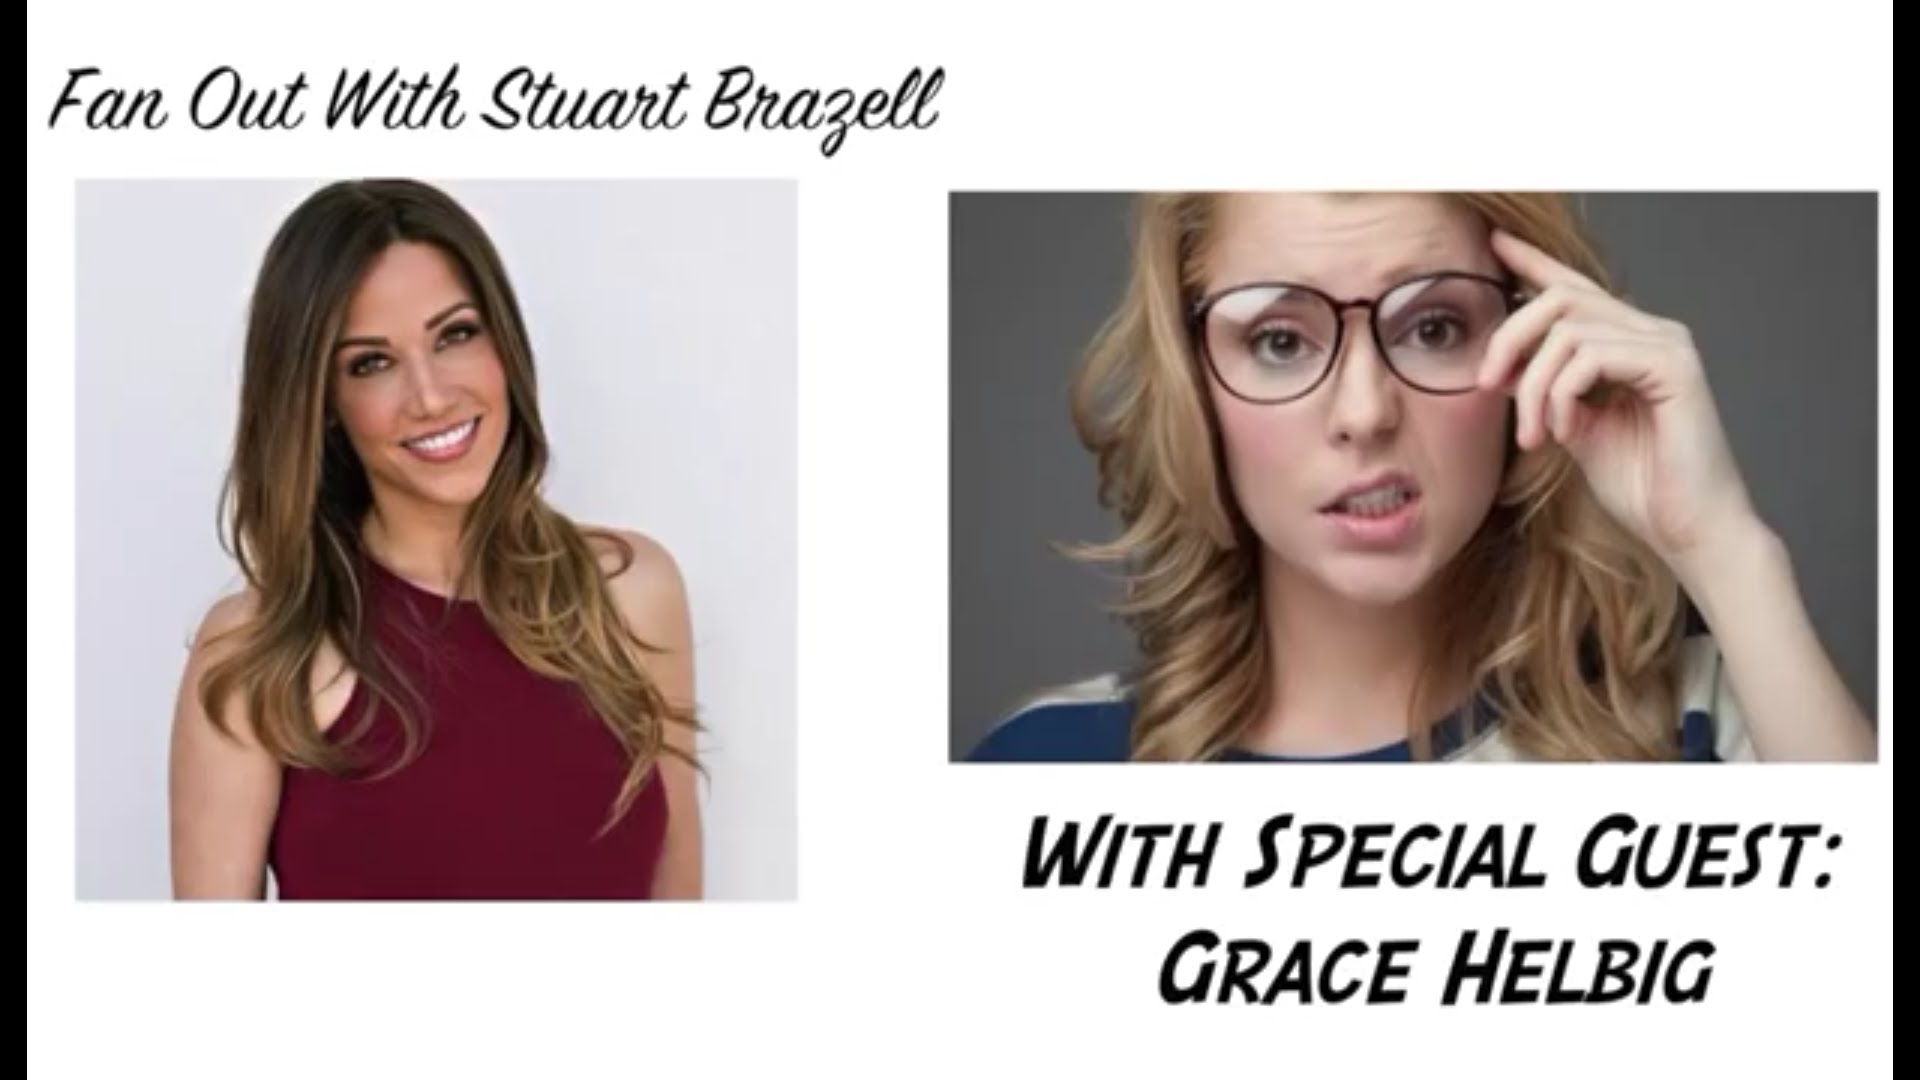 Stuart Brazell Launches Her New Celebrity Digital Interview Series 'Fan Out With Stuart Brazell' With Her First Guest Grace Helbig